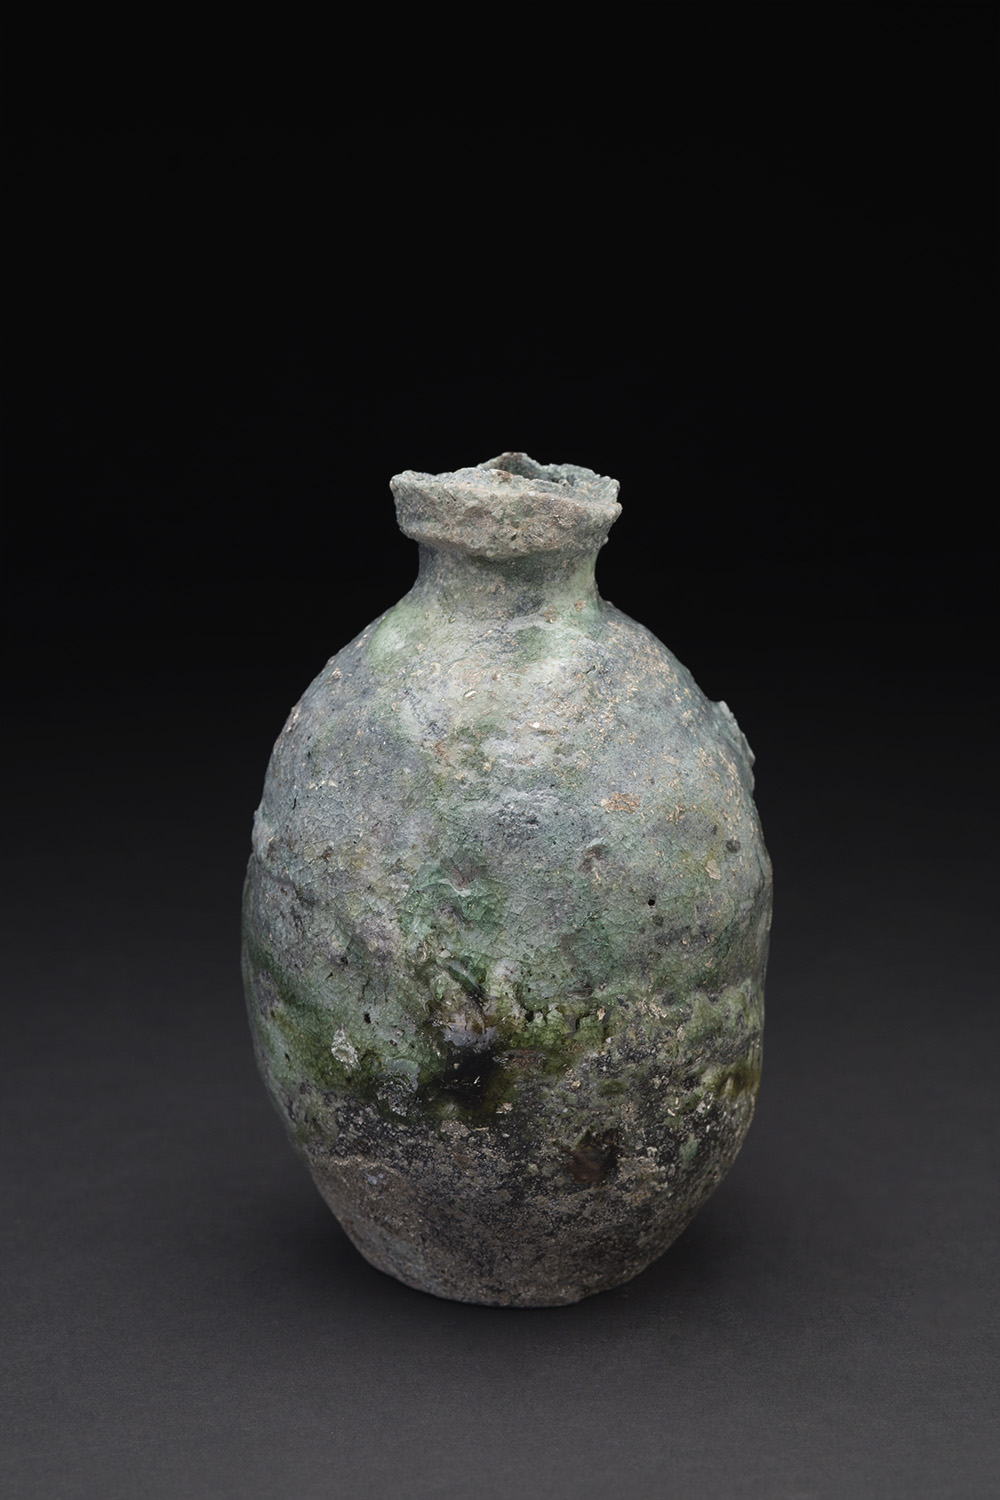 Mitch Iburg    Hidashi bottle  , 2015 Ceramic 6 x 4 x 4 inches 15.2 x 10.2 x 10.2 cm MIb 1